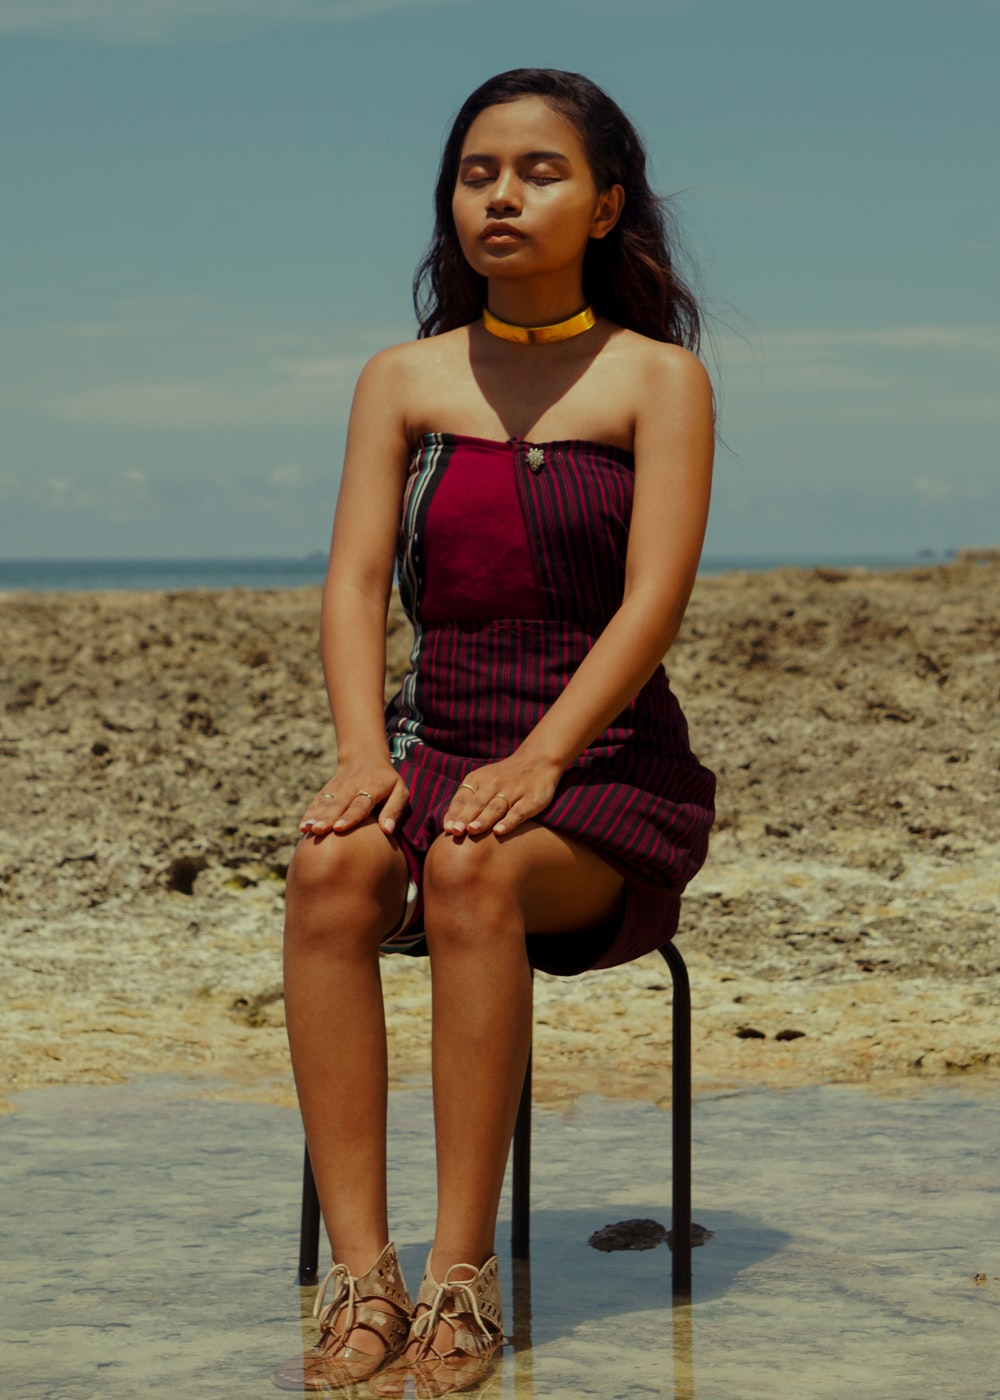 woman in black and red sleeveless dress sitting on chair on beach during daytime